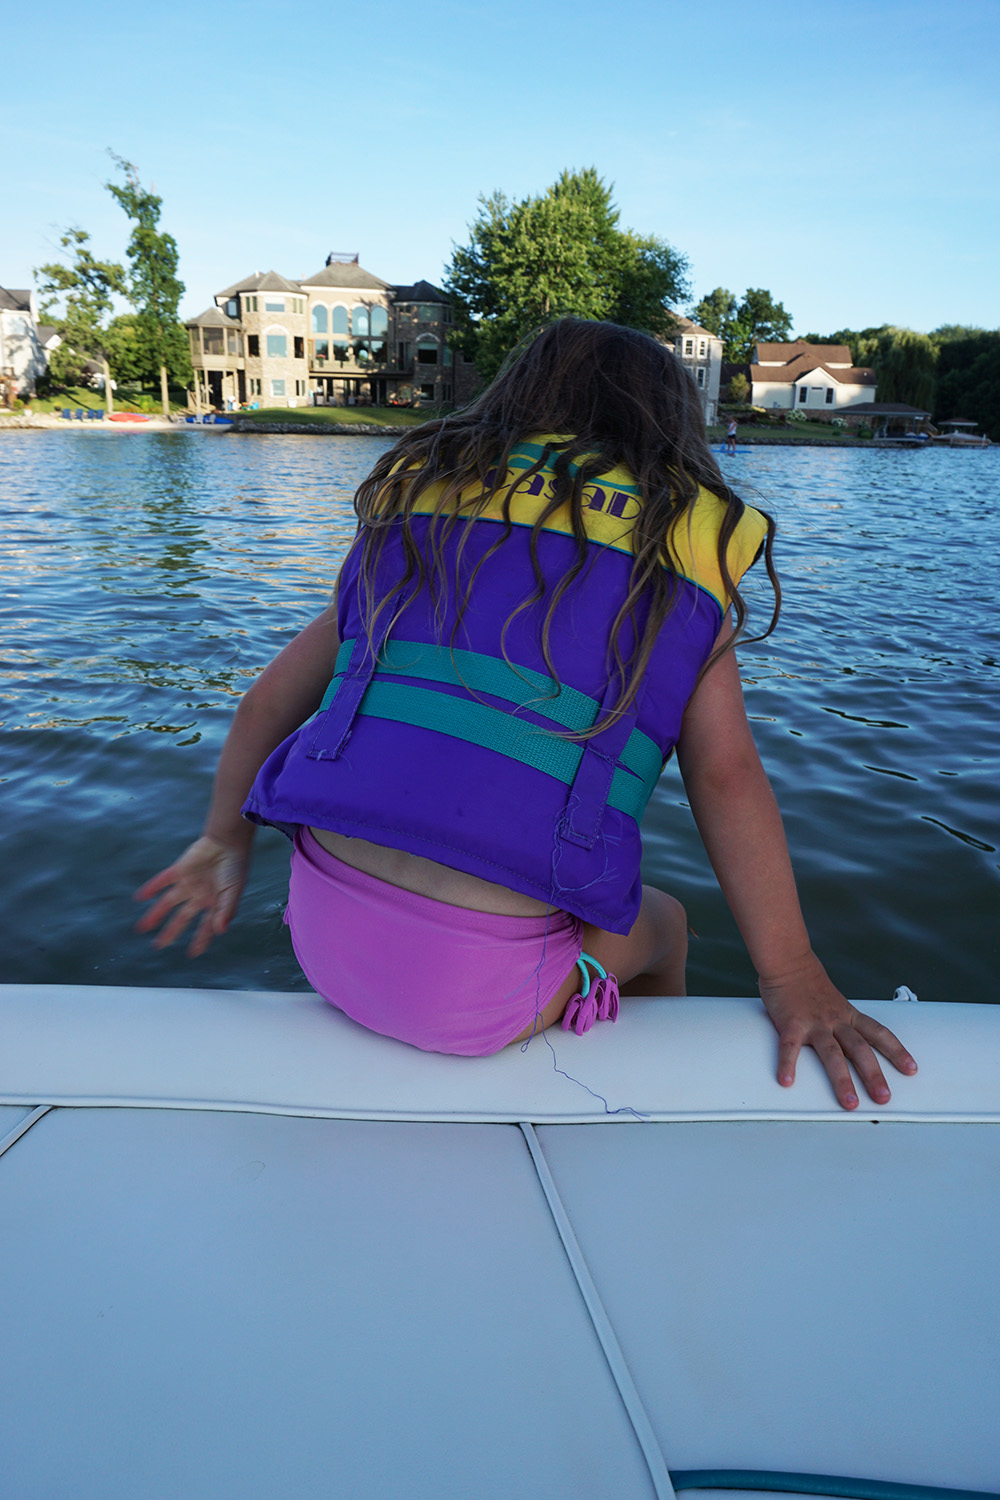 boating safety for kids